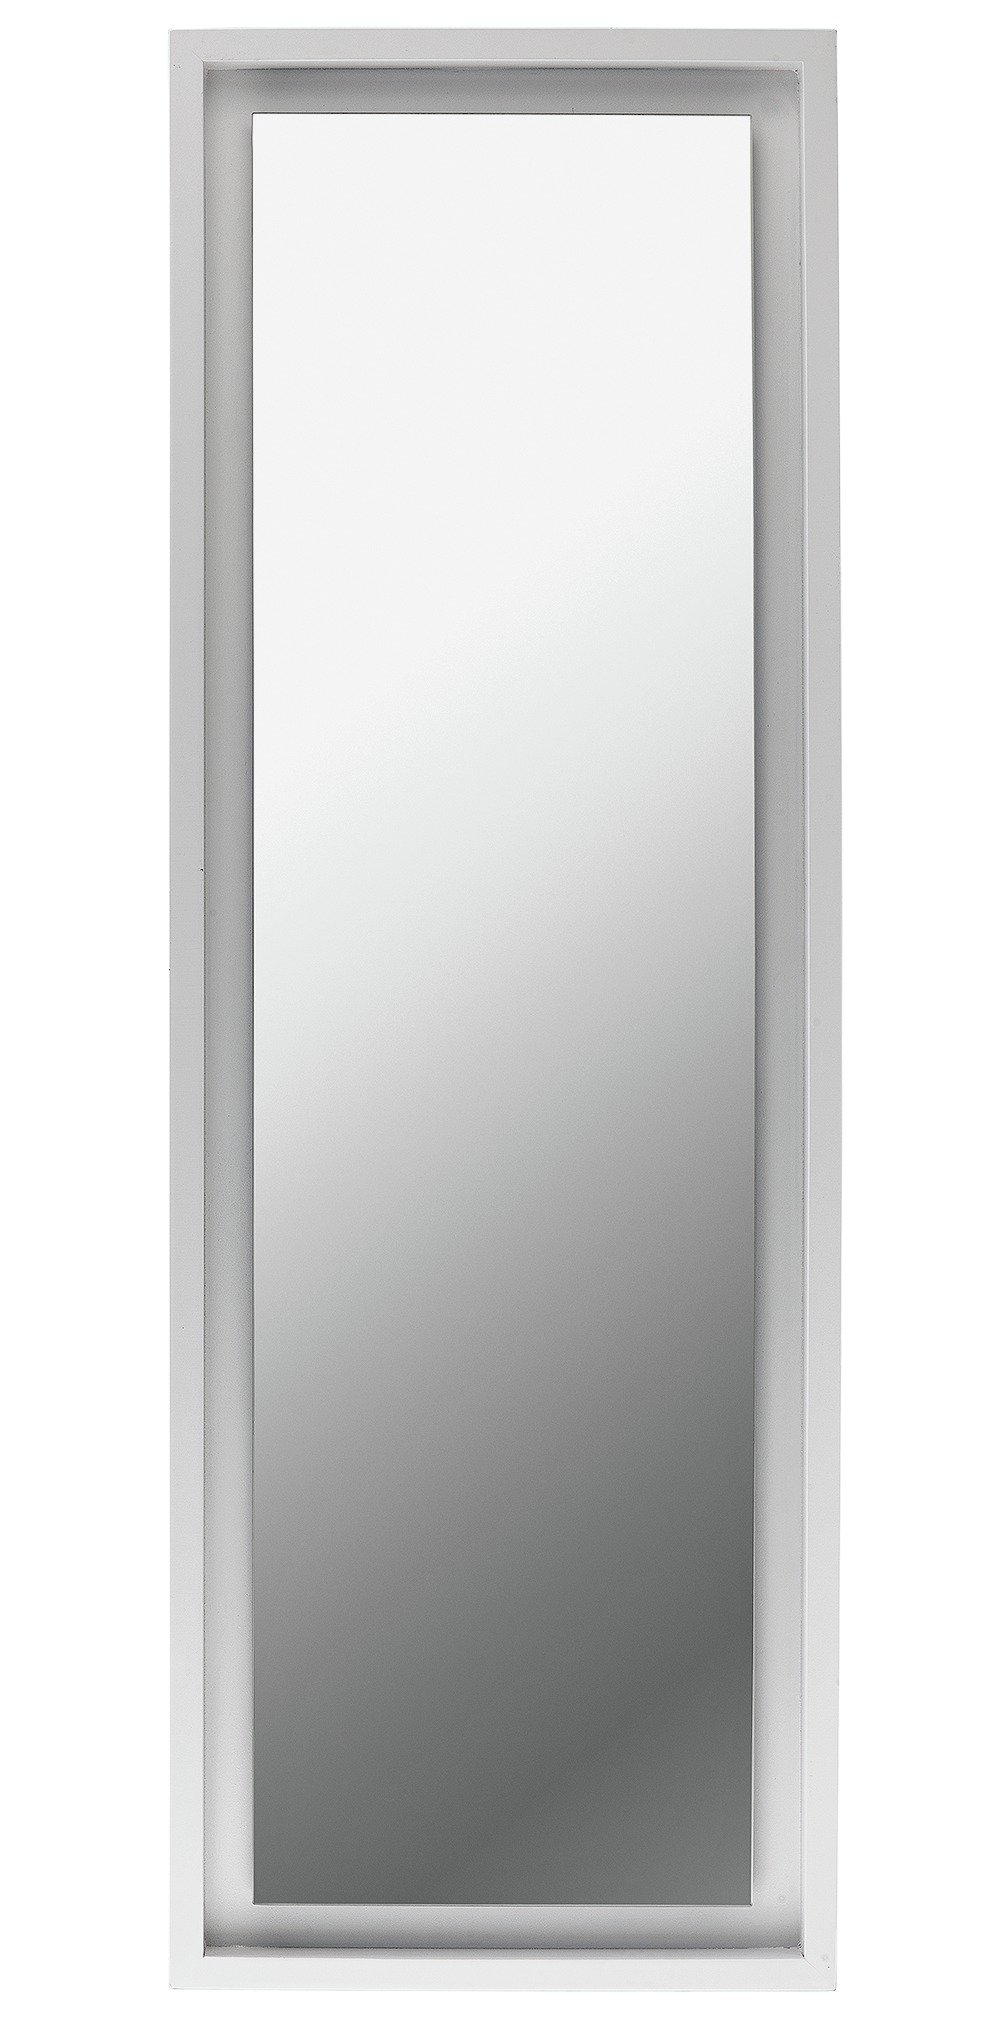 Argos Home Siena Full Length Floating Wooden Mirror review